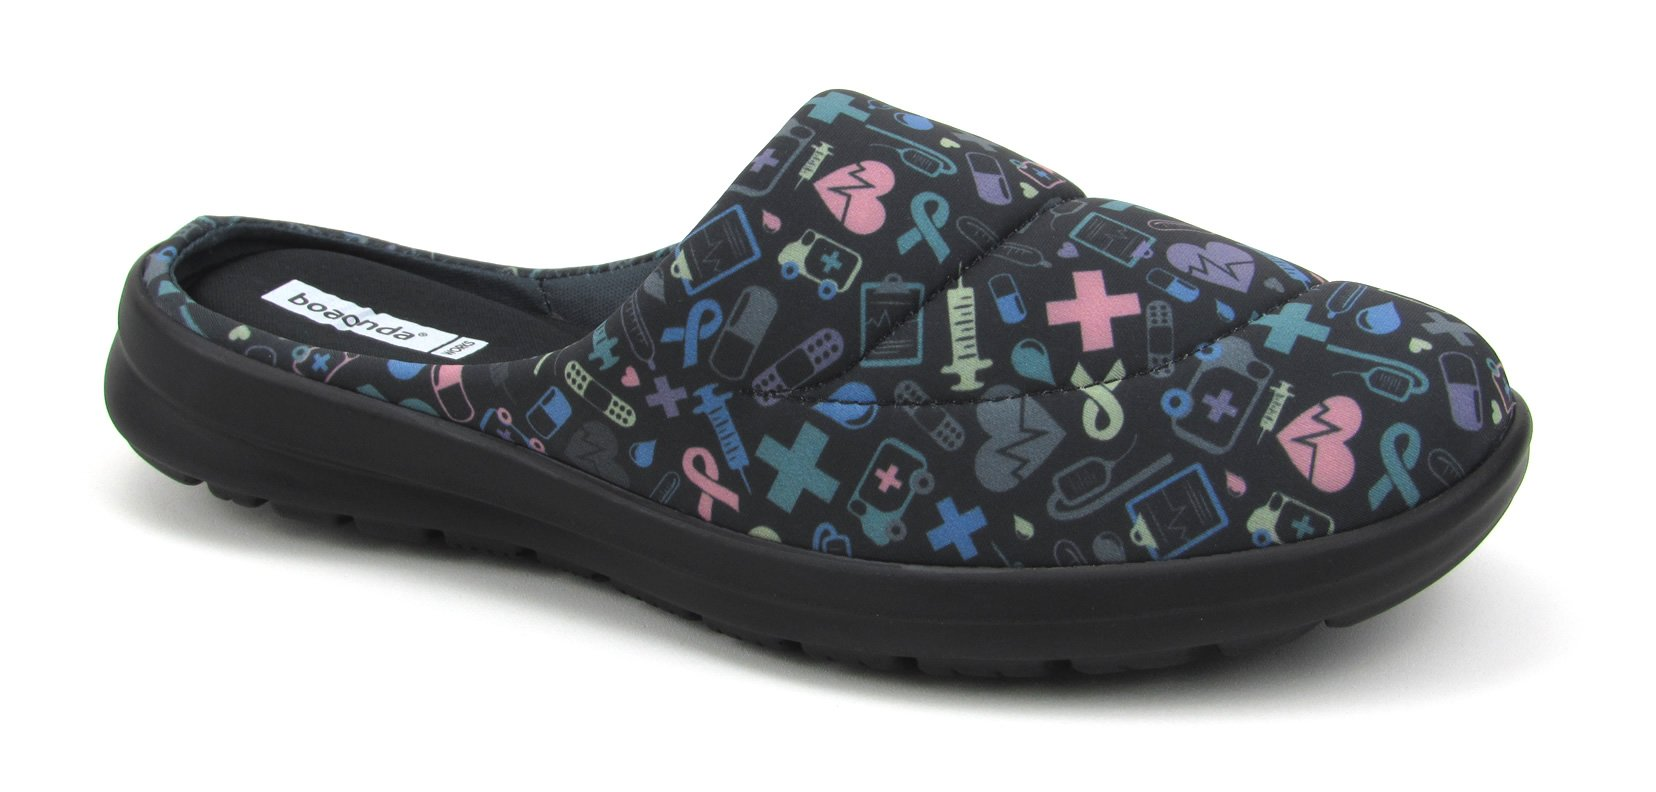 Fresh Women's Cute Memory Foam Mule Nursing Shoes - Printed - Florence (10, Black Colorful Hosp)